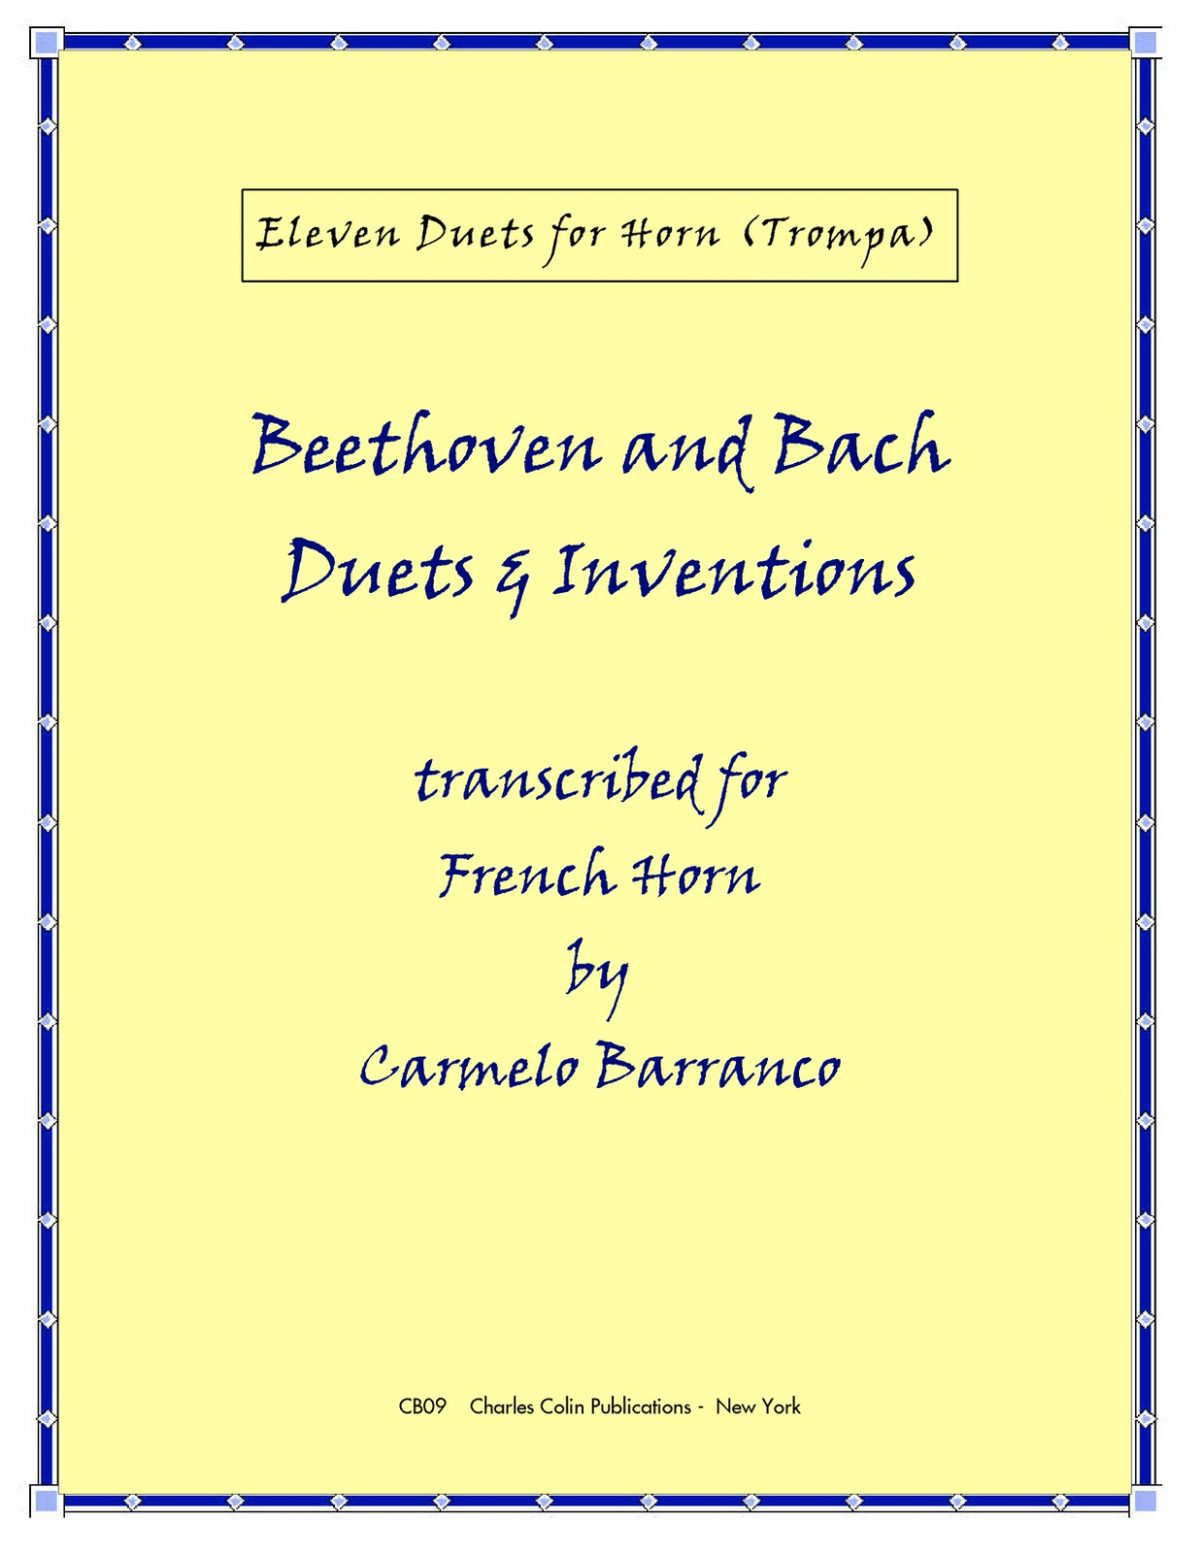 Baranco, Beethoven and Bach Duets & Inventions-p01